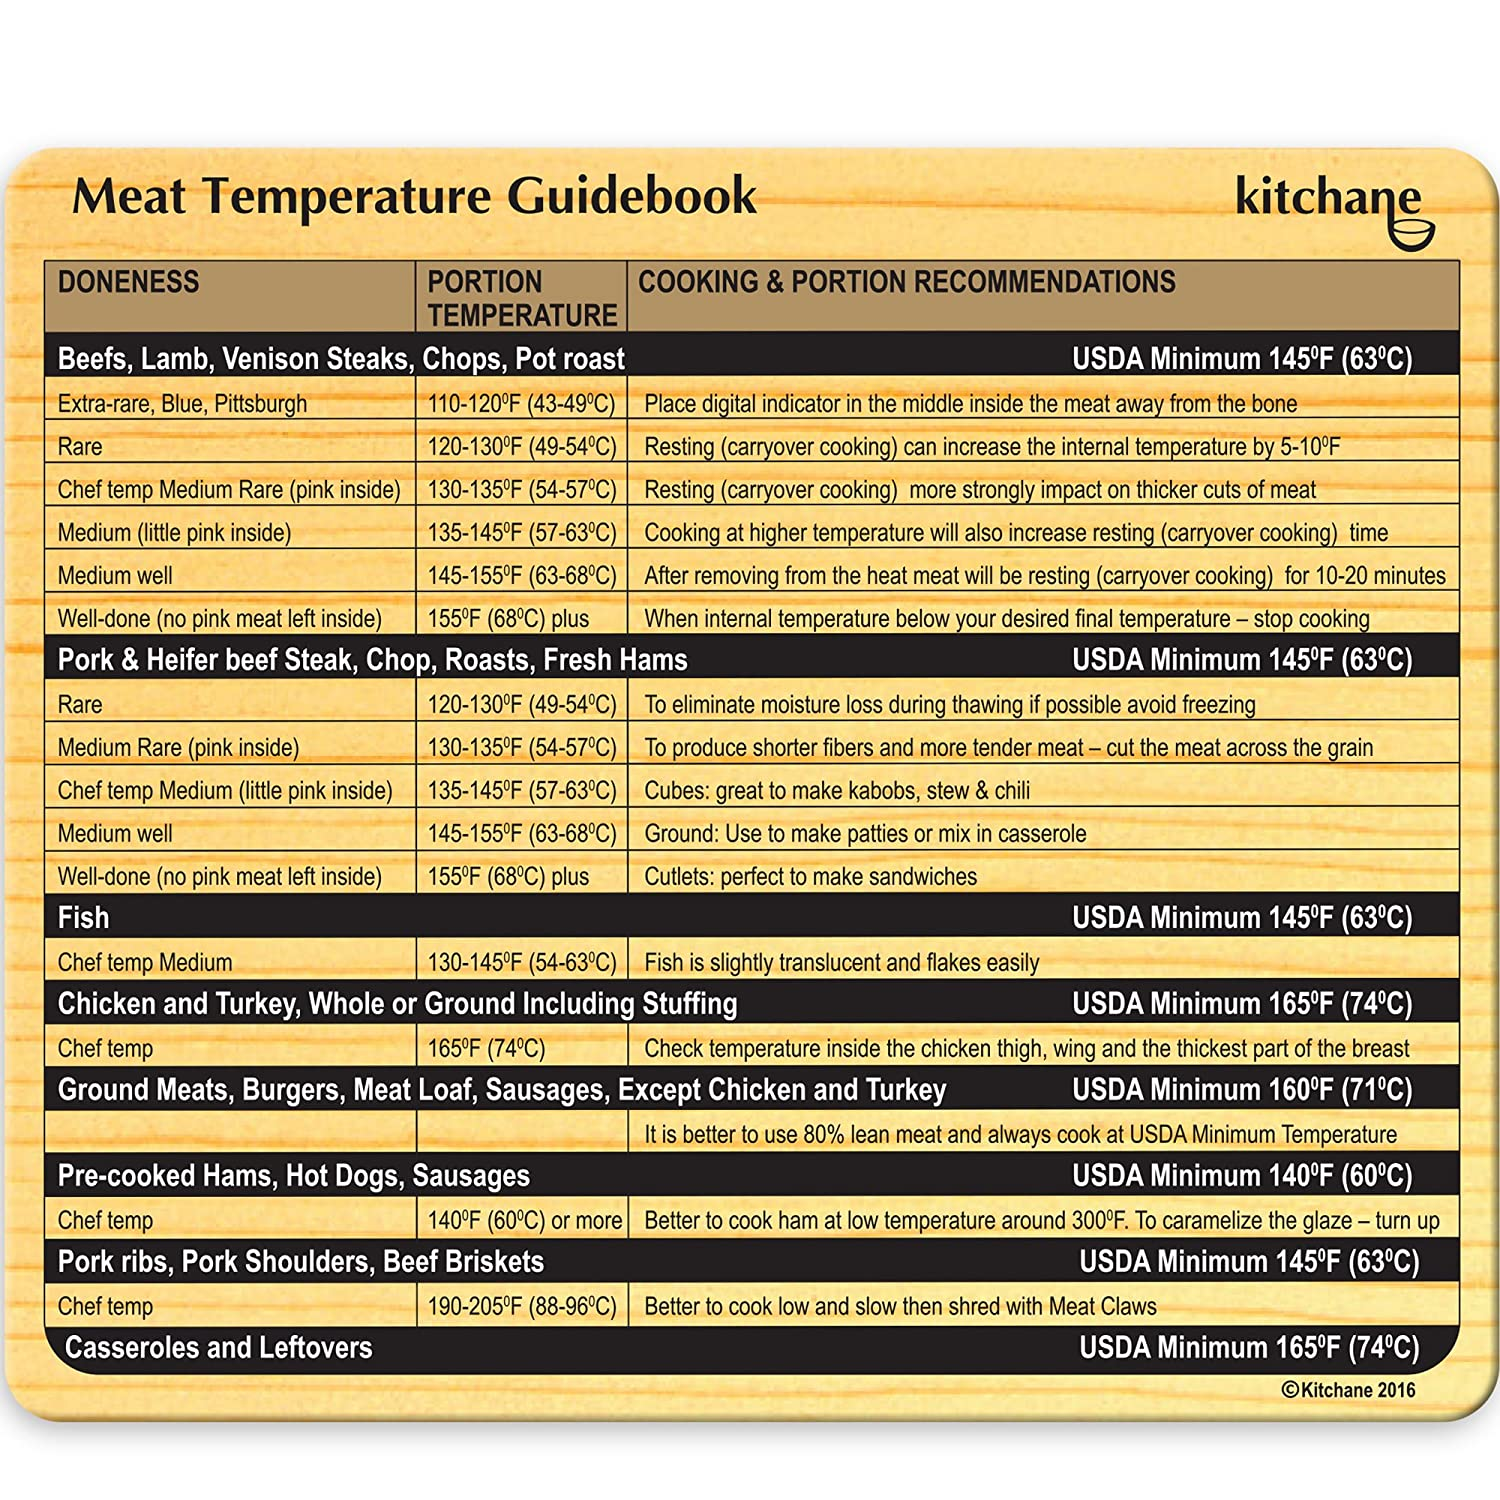 Meat Thermometer Magnet - Refrigerator Temp Grill Magnet - Temperature BBQ Chart - Cooking Guide - Kitchen Conversion Chart - Cook Best Steak Chicken Turkey Pork Fish Burgers Ribs - Chef Choice